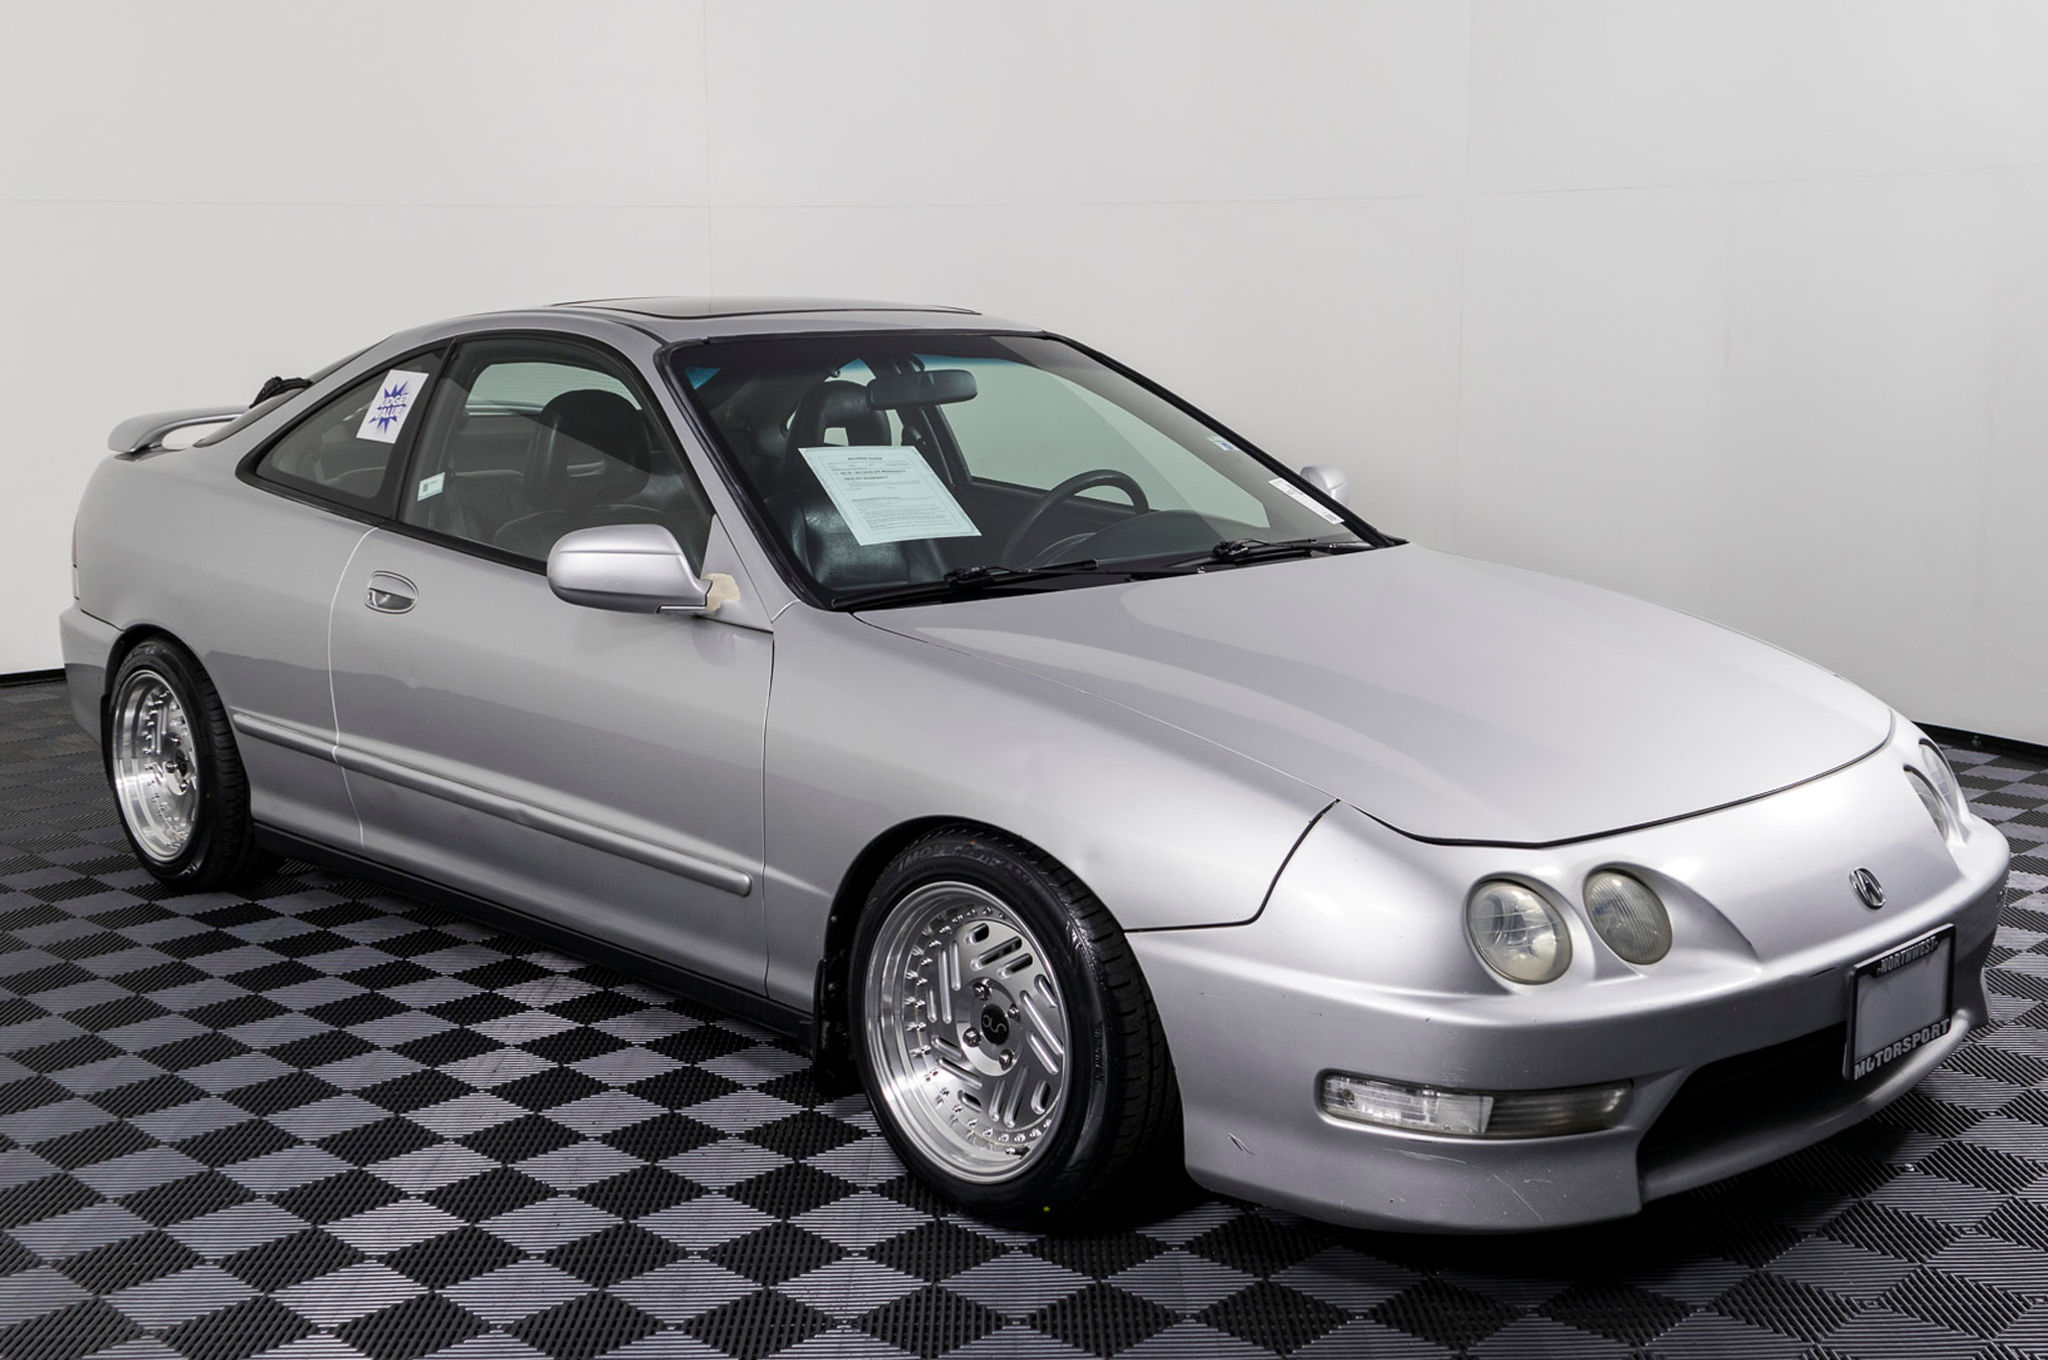 Used 2000 Acura Integra LS FWD Hatchback For Sale - 48557A